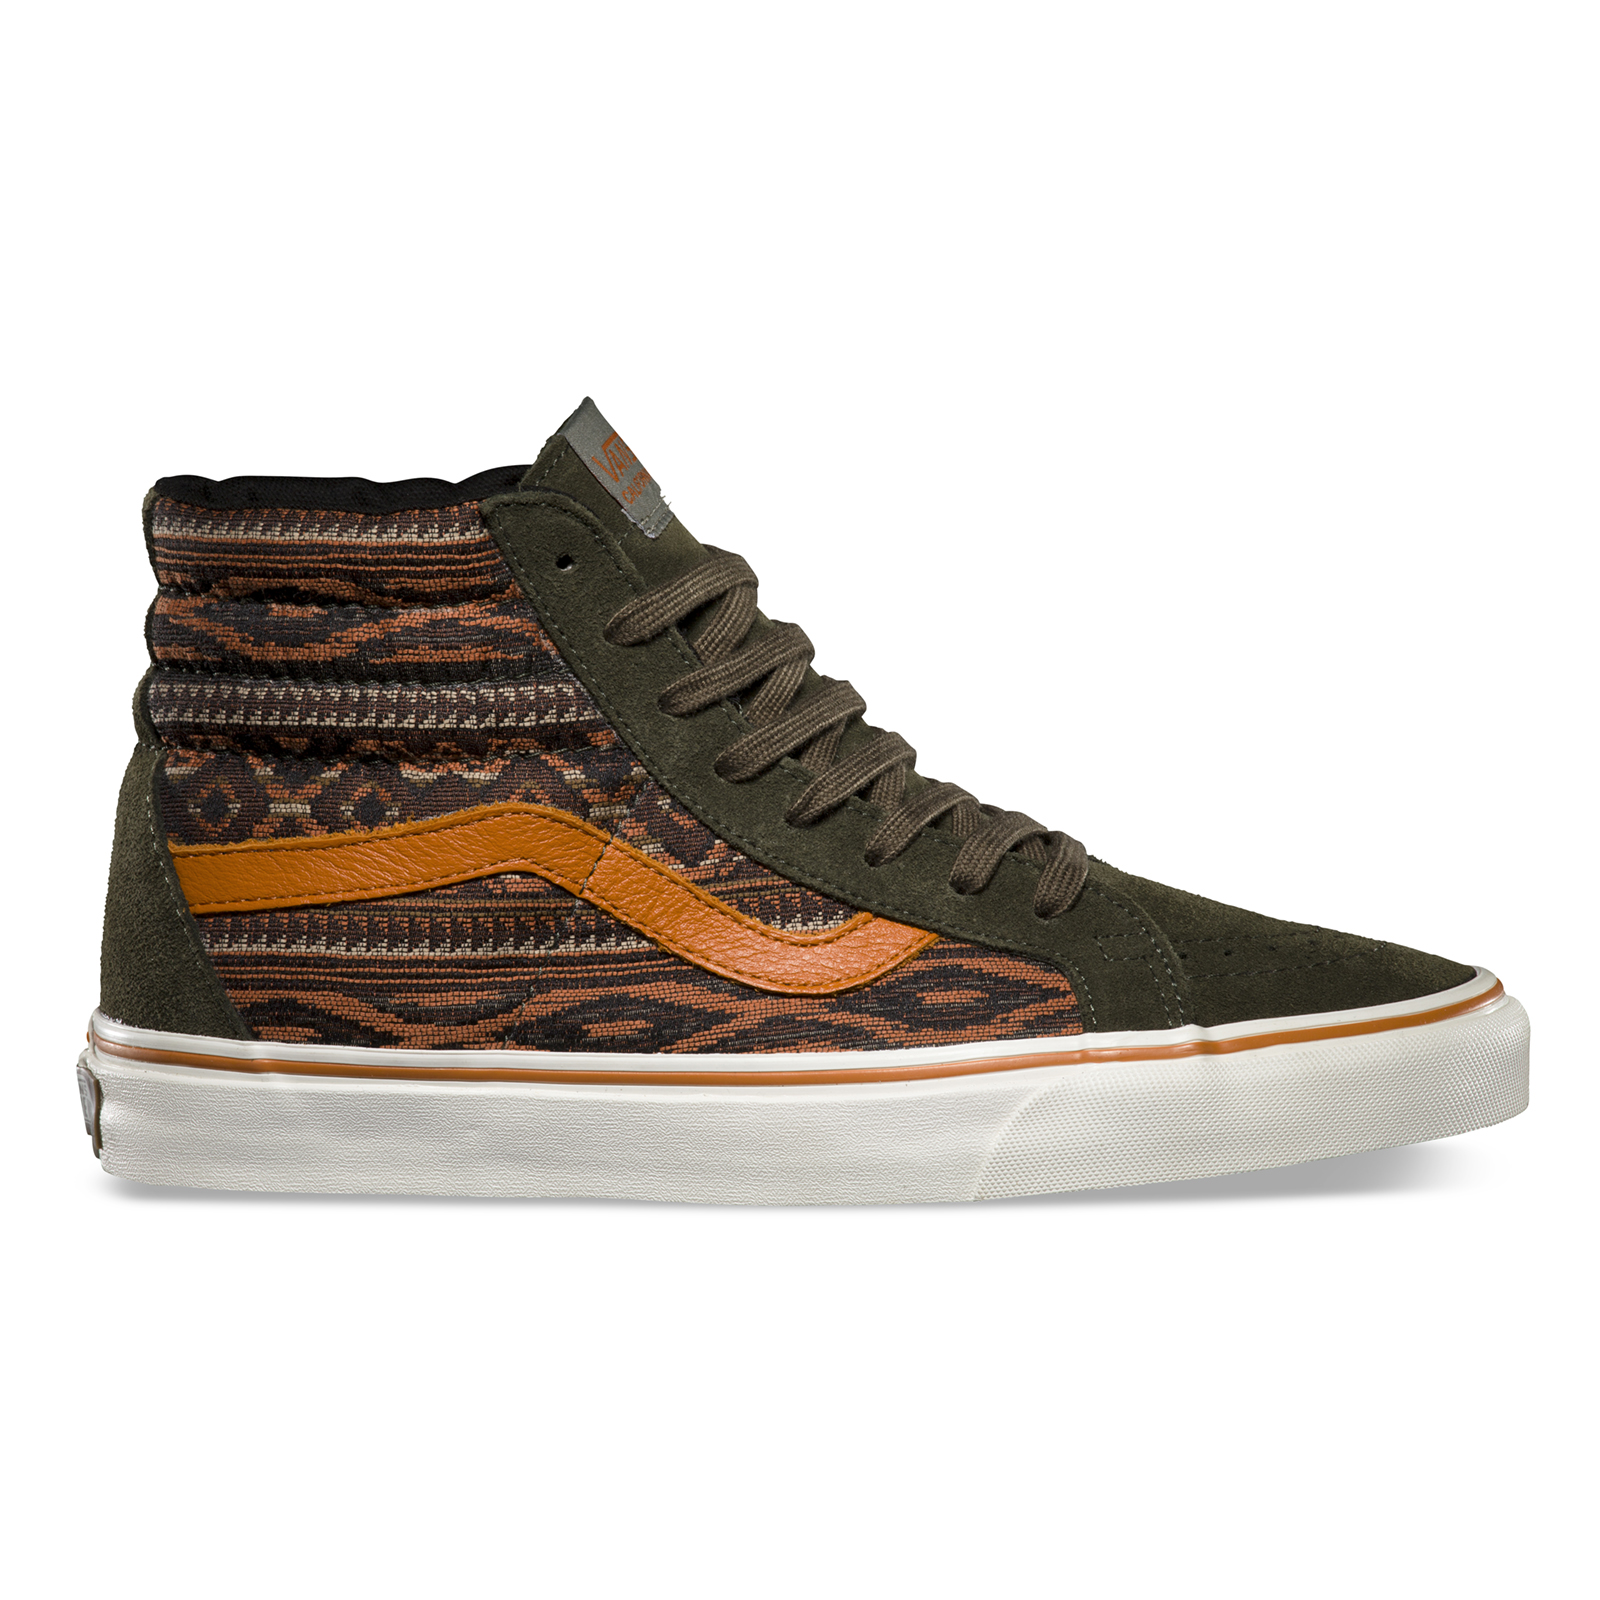 The Juxtapoz 2013 Holiday Gift Guide: JX-GG-Vans-Sk8-Hi-Reissue.JPG